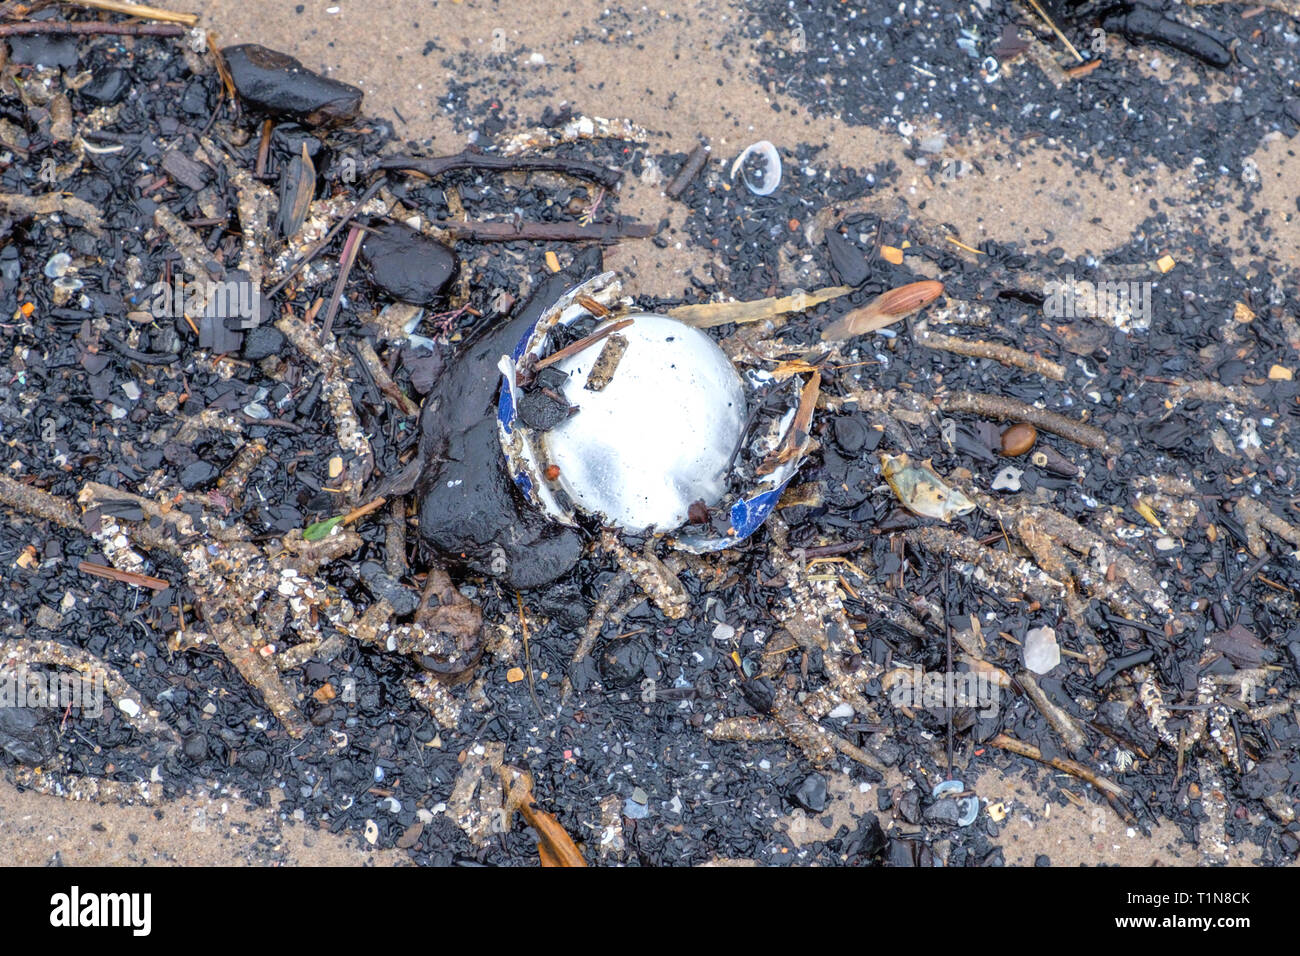 Environmental image of Pollution with the remains of a aluminium drinks can that has been washed up on the beach in Irvine North Ayrshire ion Scotland - Stock Image